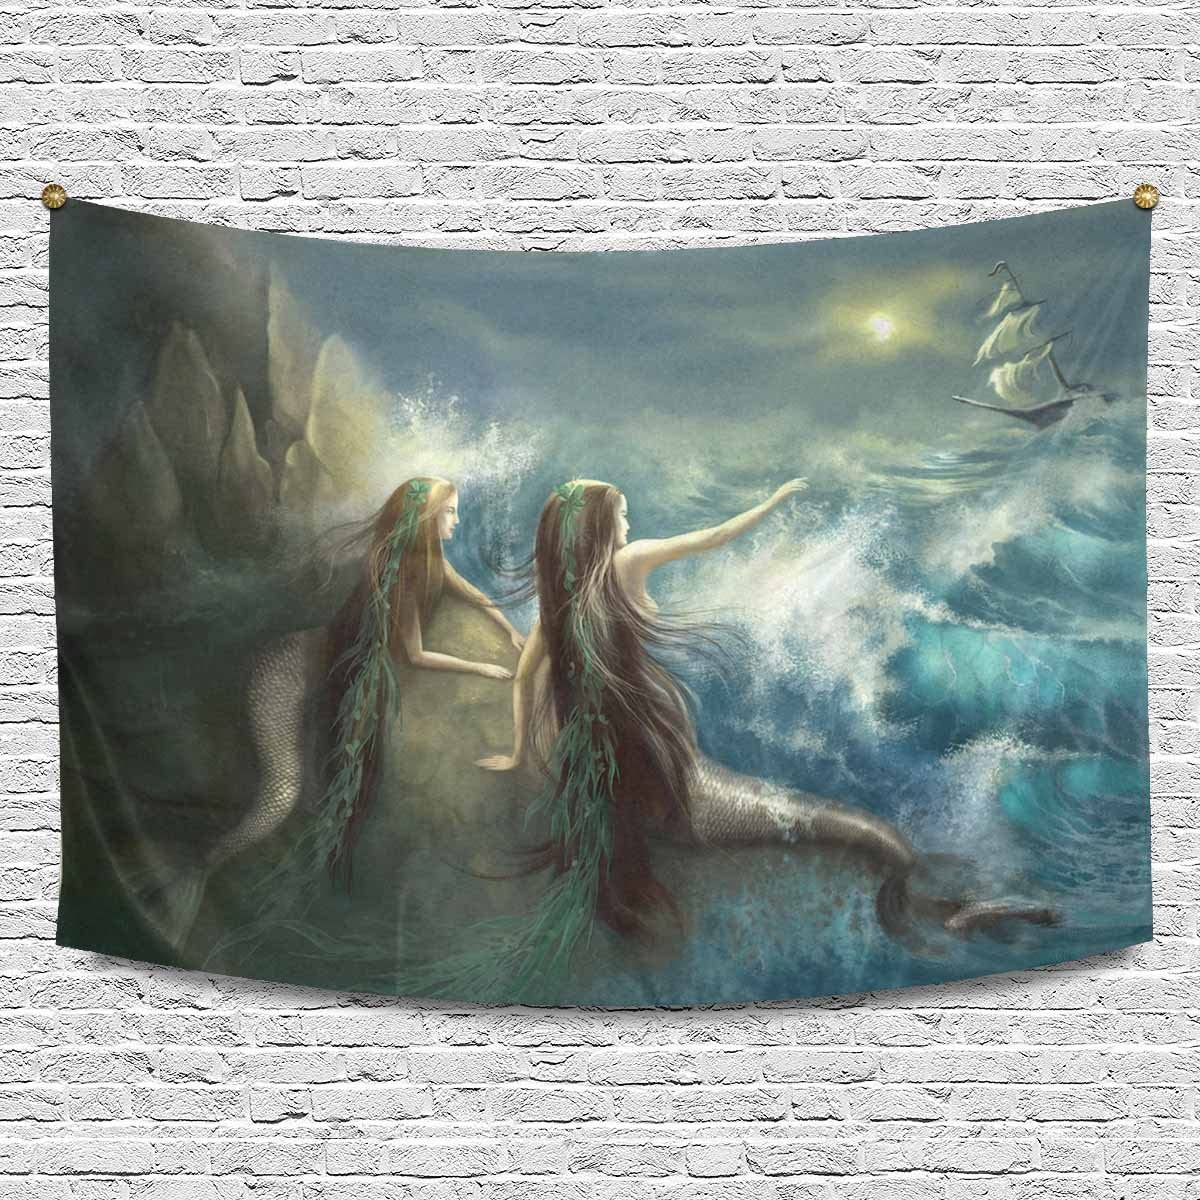 INTERESTPRINT Abstract Hunting Two Mermaids in Stormy Ocean Tapestries Home Decor, Cotton Linen Tapestry Wall Hanging Decorative Tapestry, 90W X 60L Inch